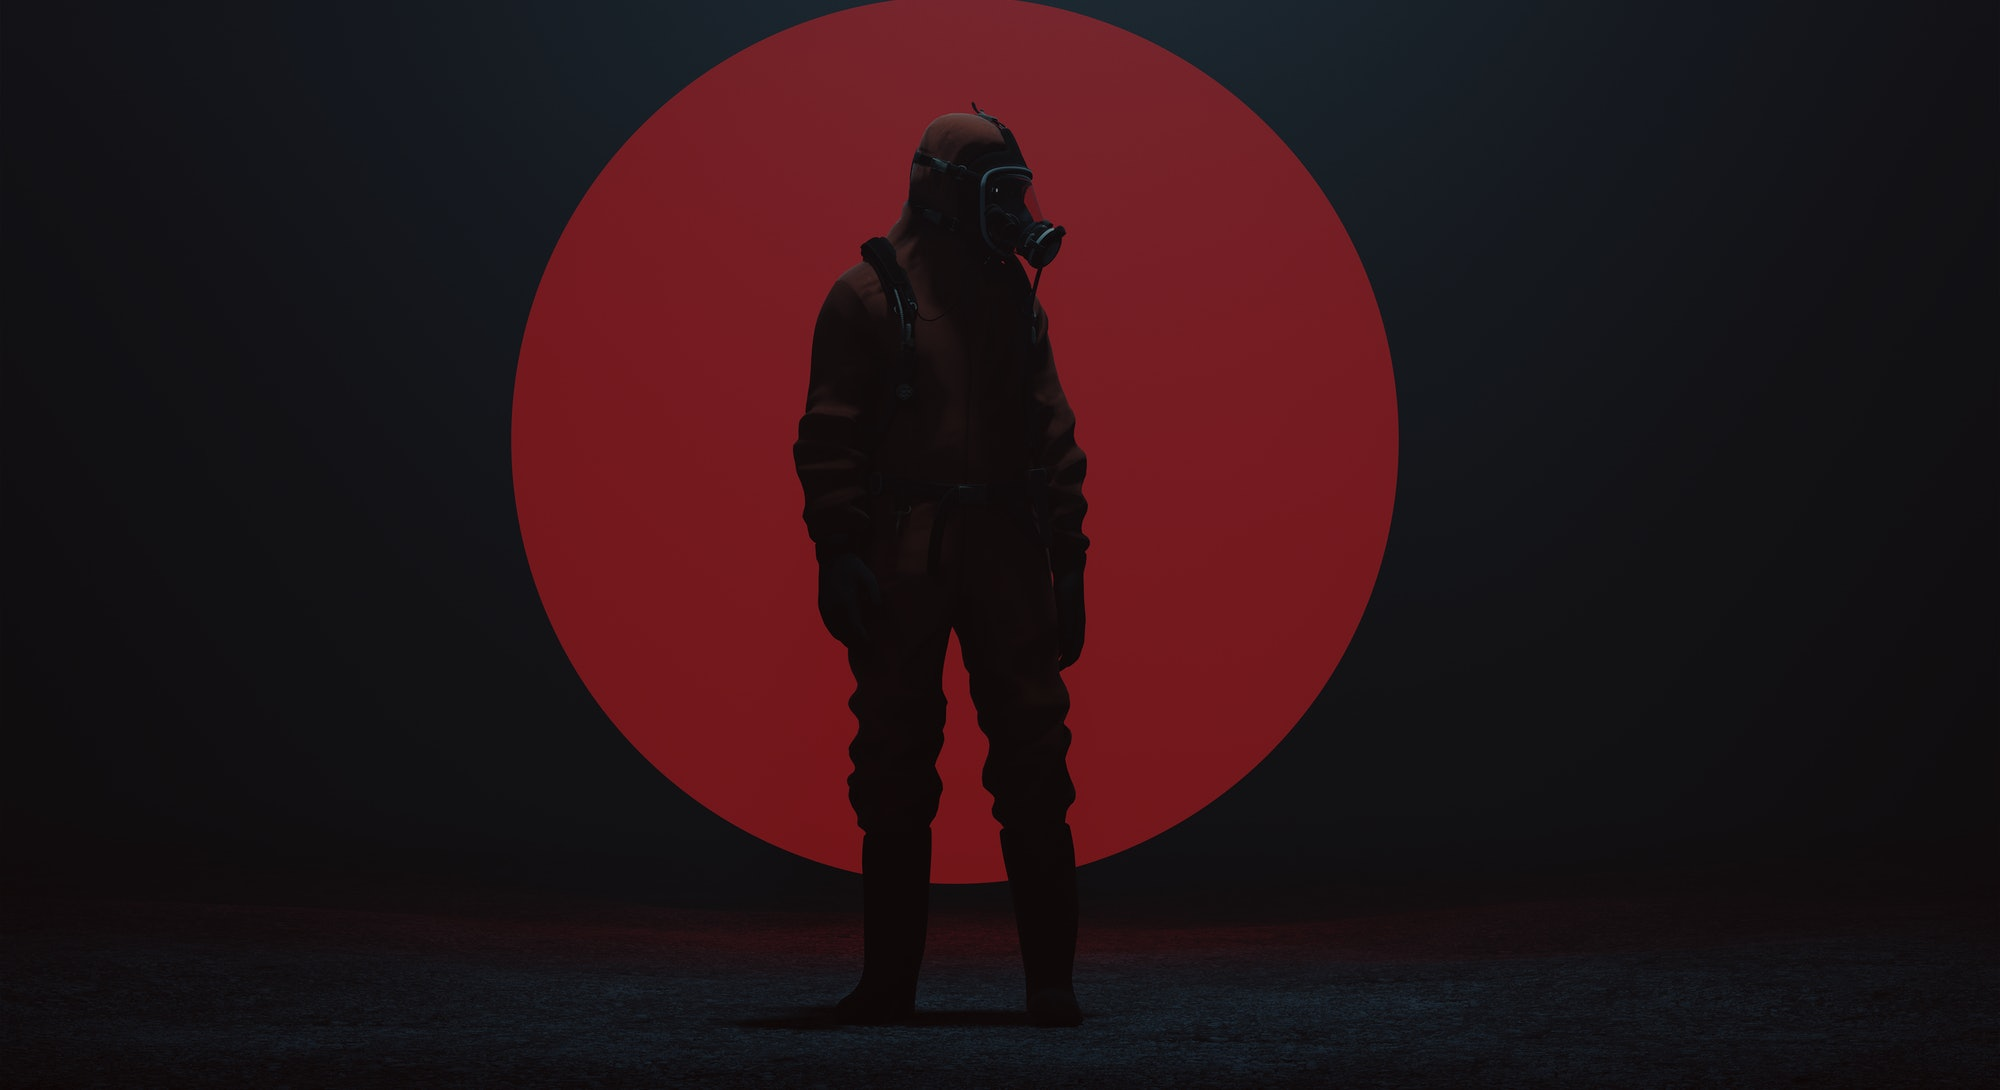 Man in a Hazmat suit with a Big Red Sphere in a foggy void 3d Illustration 3d render